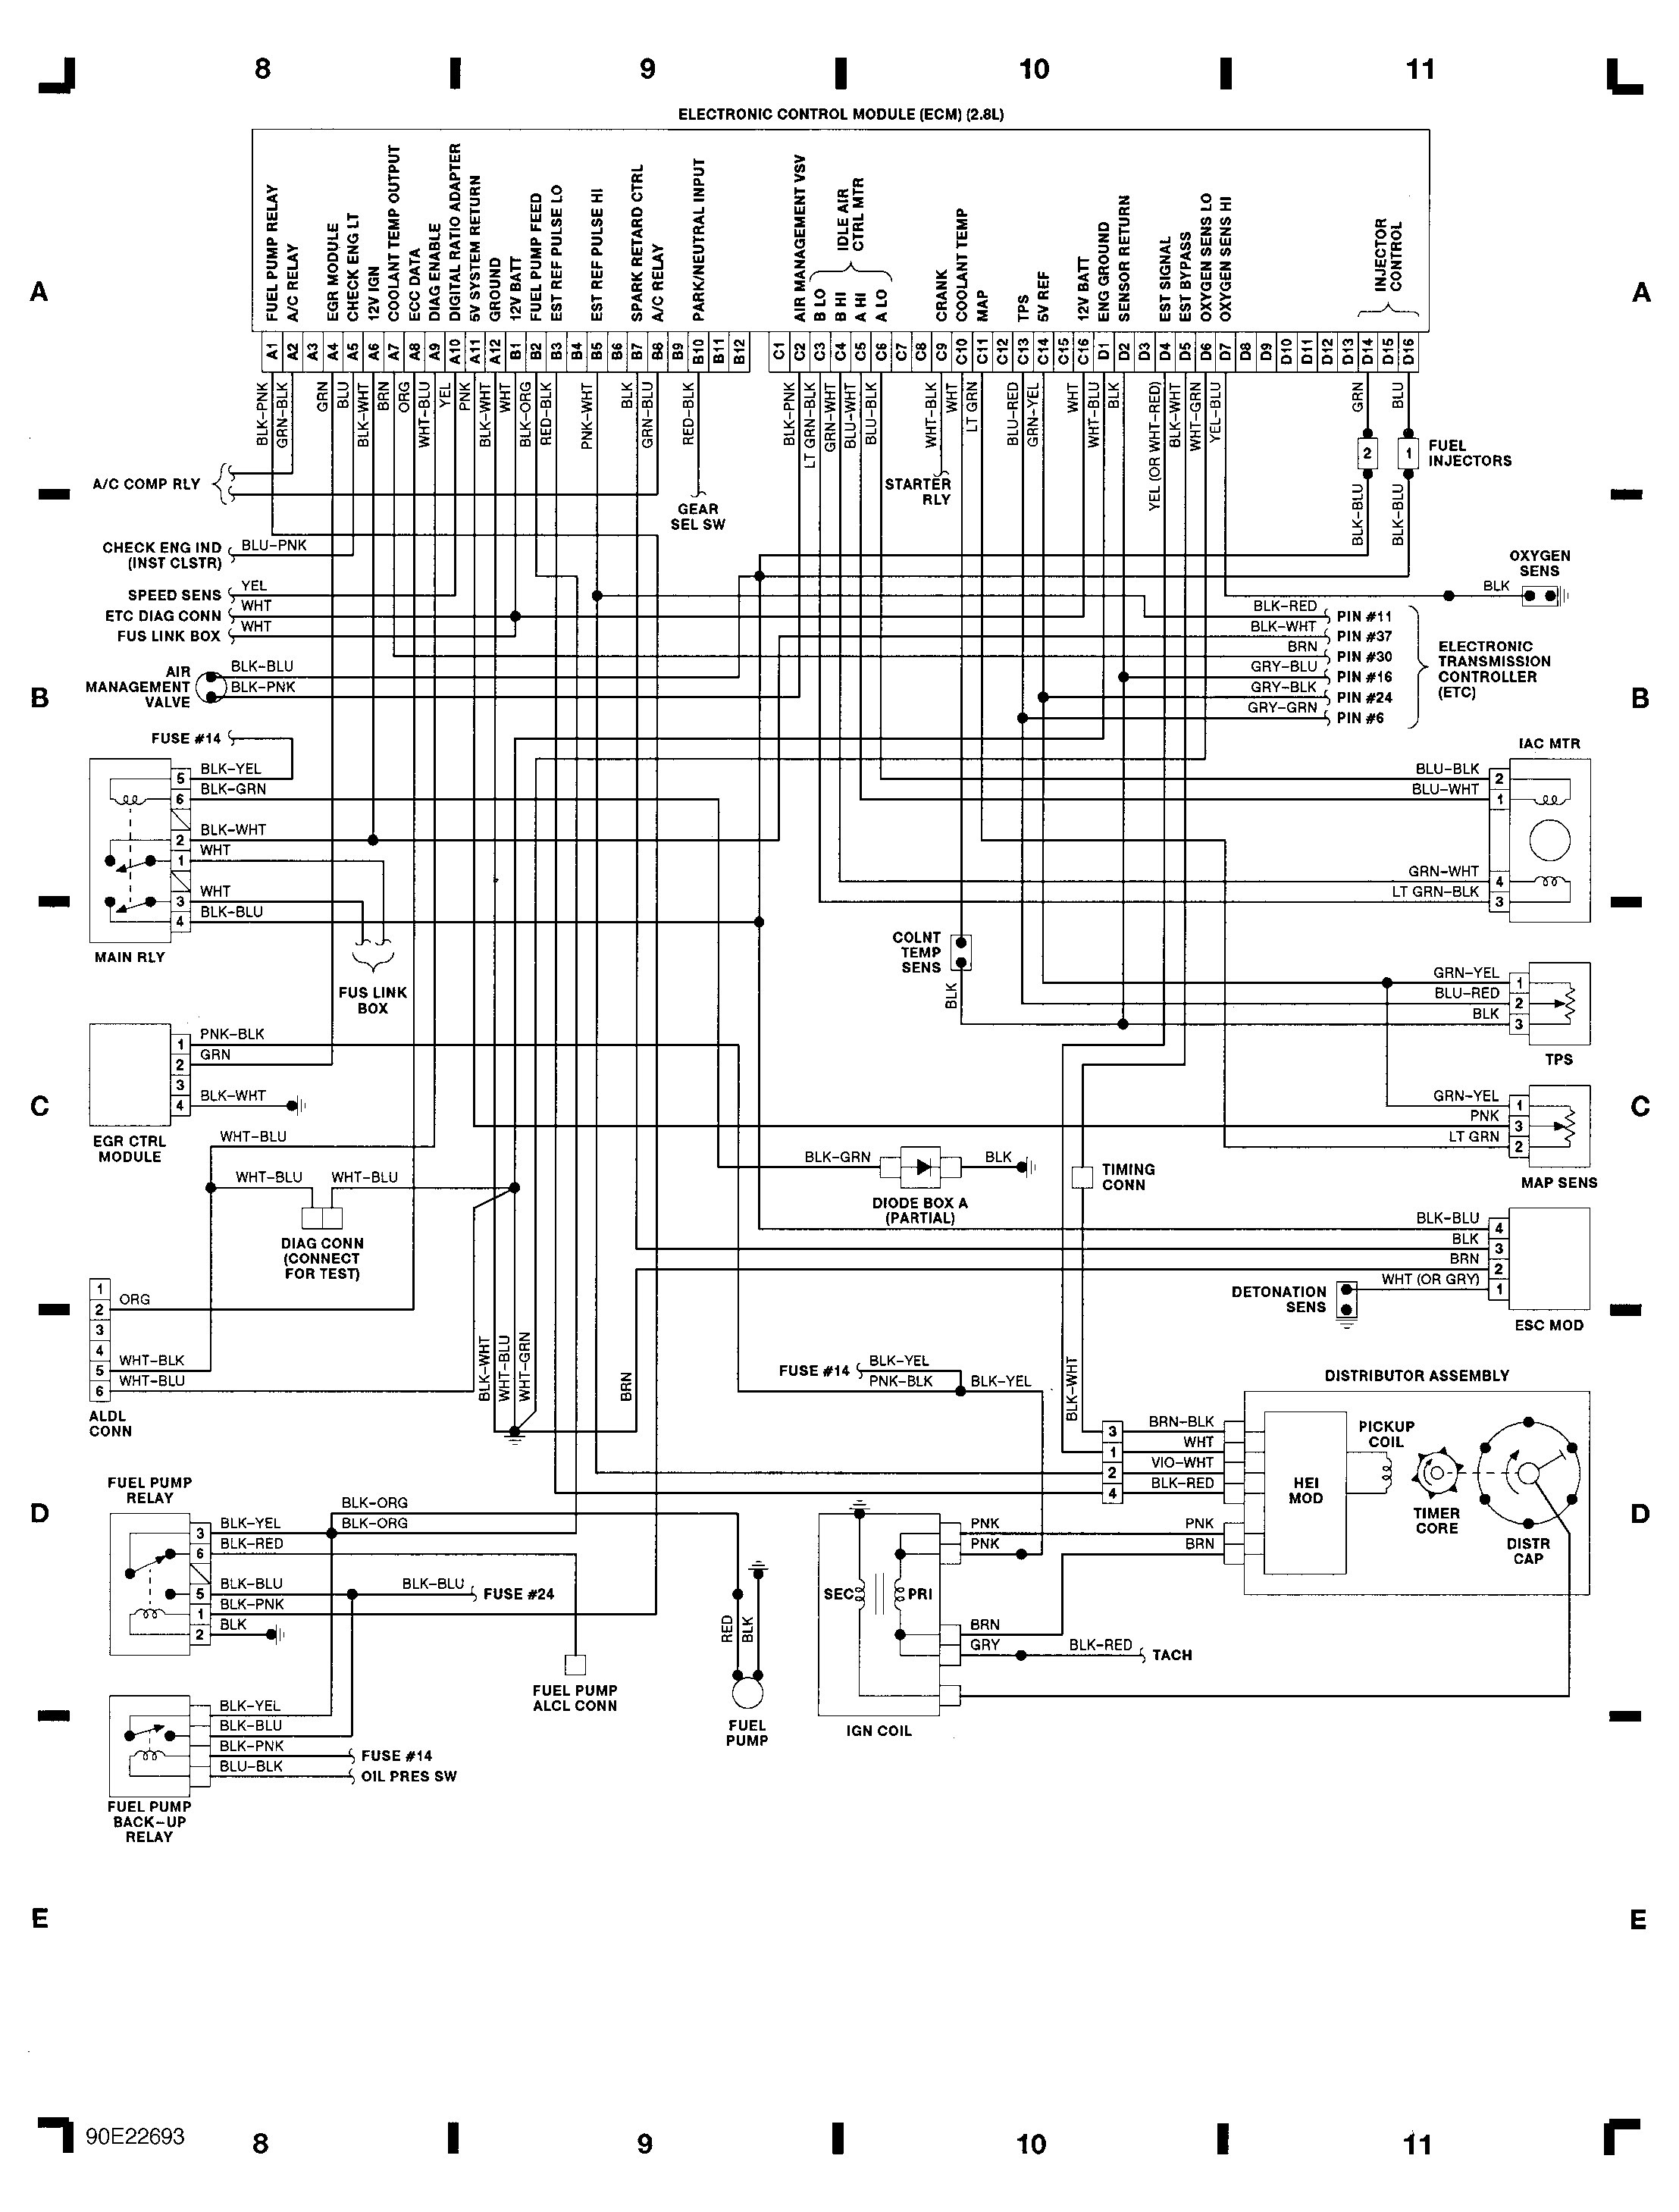 Diagram Ads C2000 Crossover Wiring Diagram Full Version Hd Quality Wiring Diagram Diagramsshinn Campionatiscipc2020 It